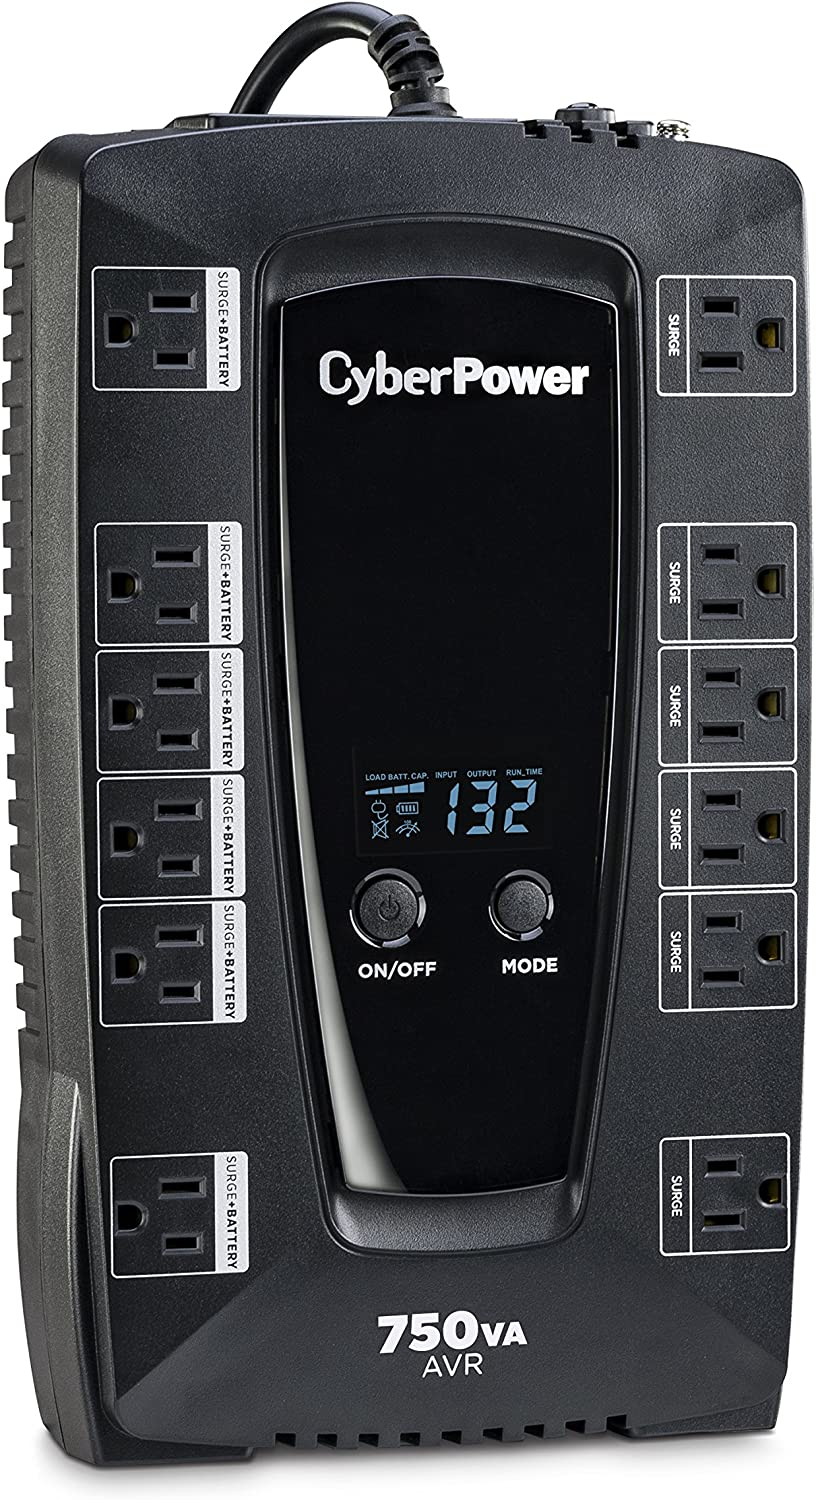 CyberPower AVRG750LCD Intelligent LCD UPS System, 750VA/450W, 12 Outlets, AVR, Compact